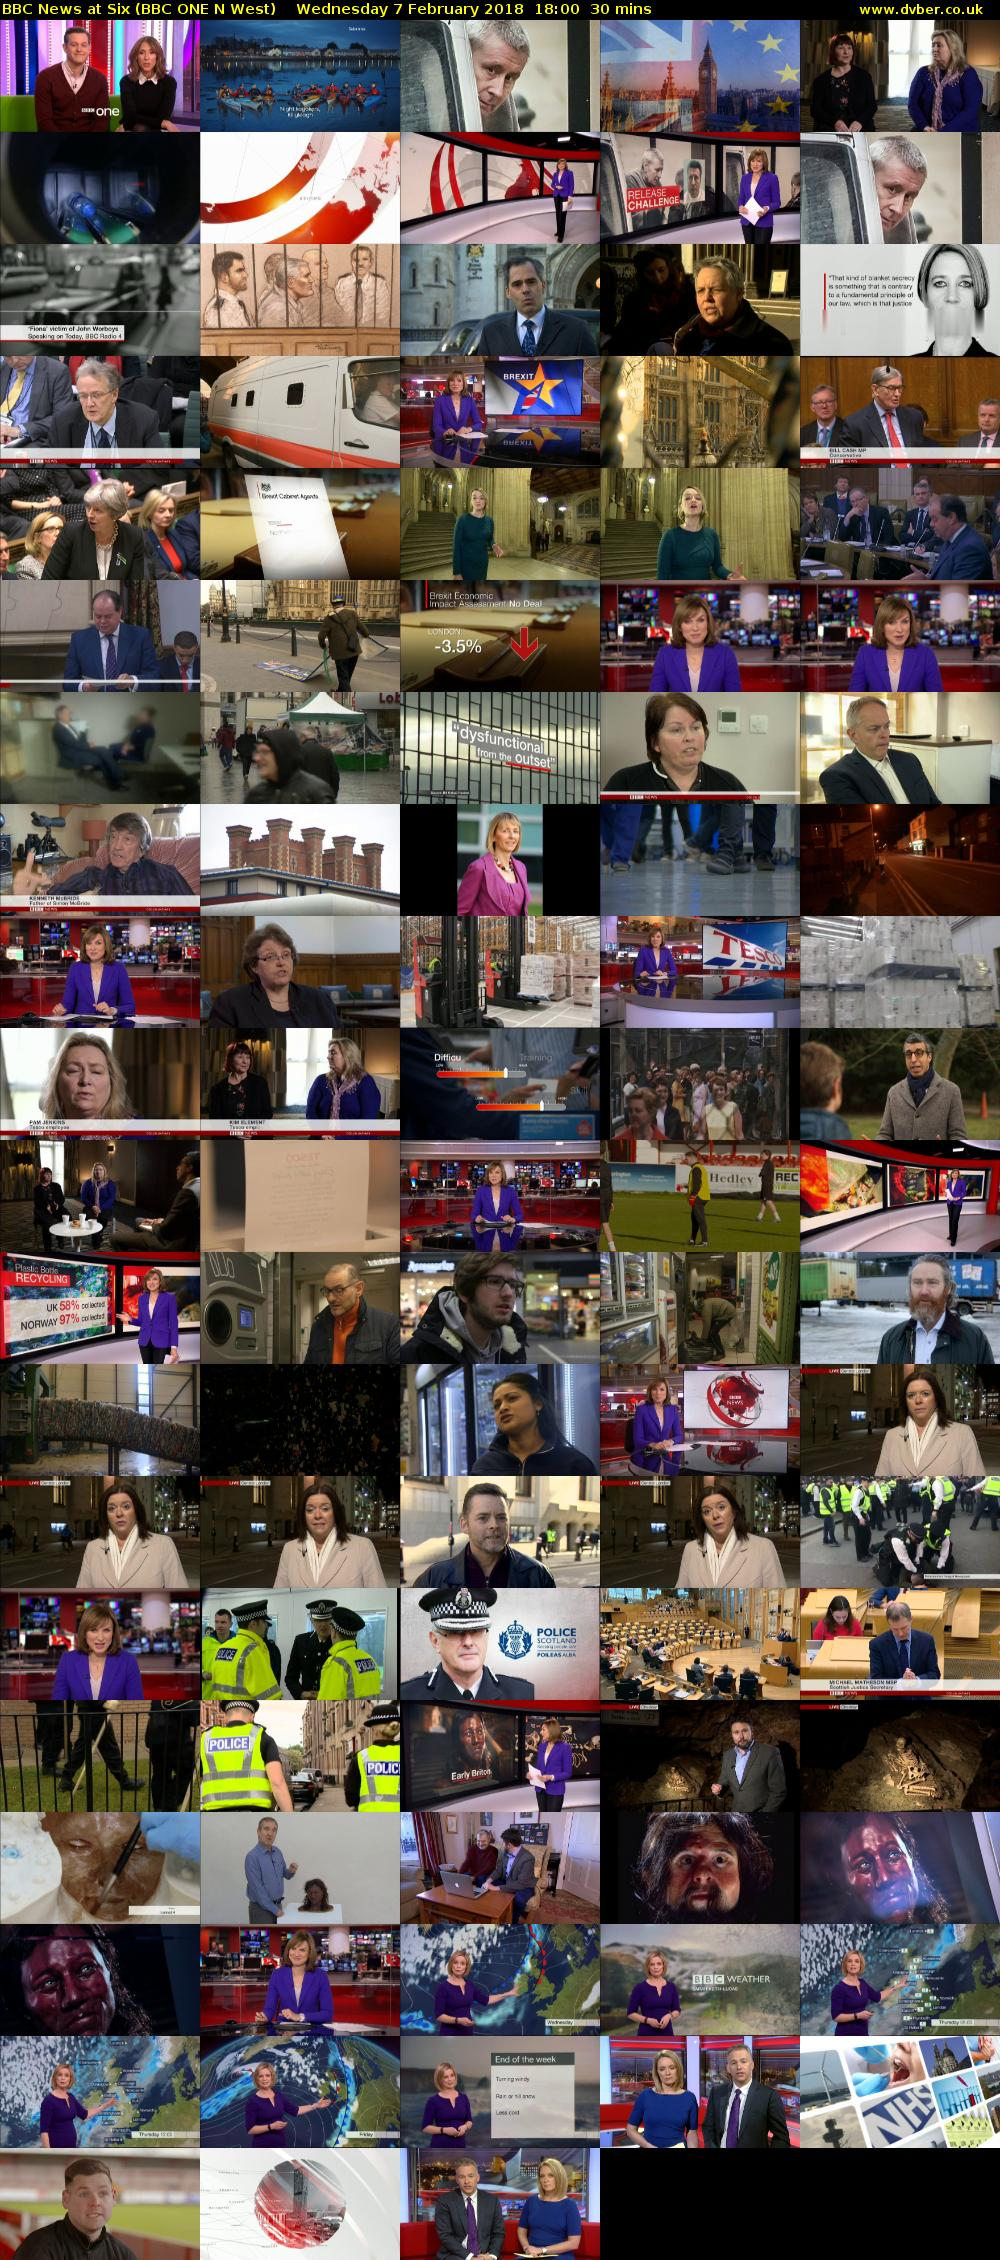 BBC News at Six (BBC ONE N West) Wednesday 7 February 2018 18:00 - 18:30